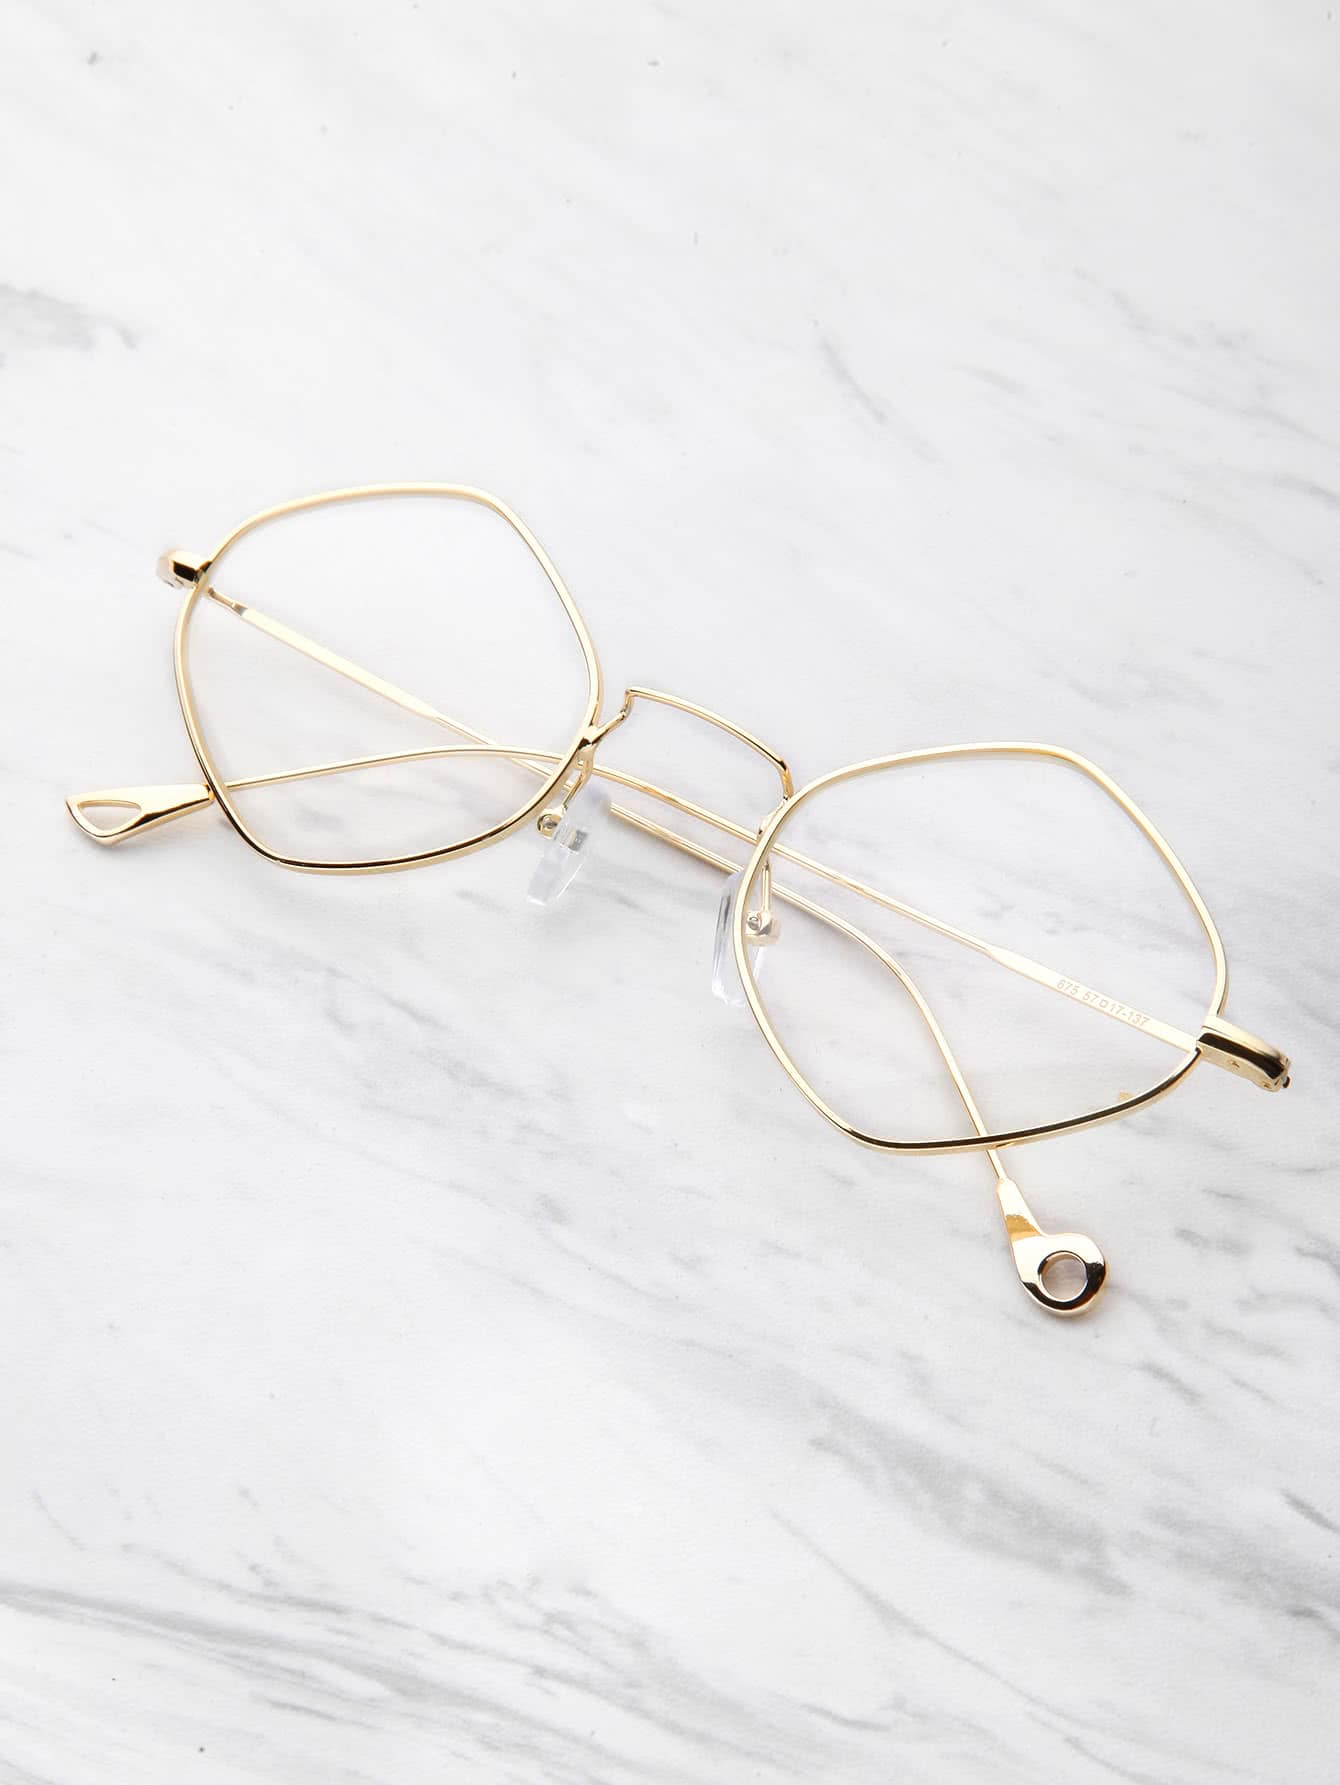 Contrast Frame Clear Glasses sunglass170526301